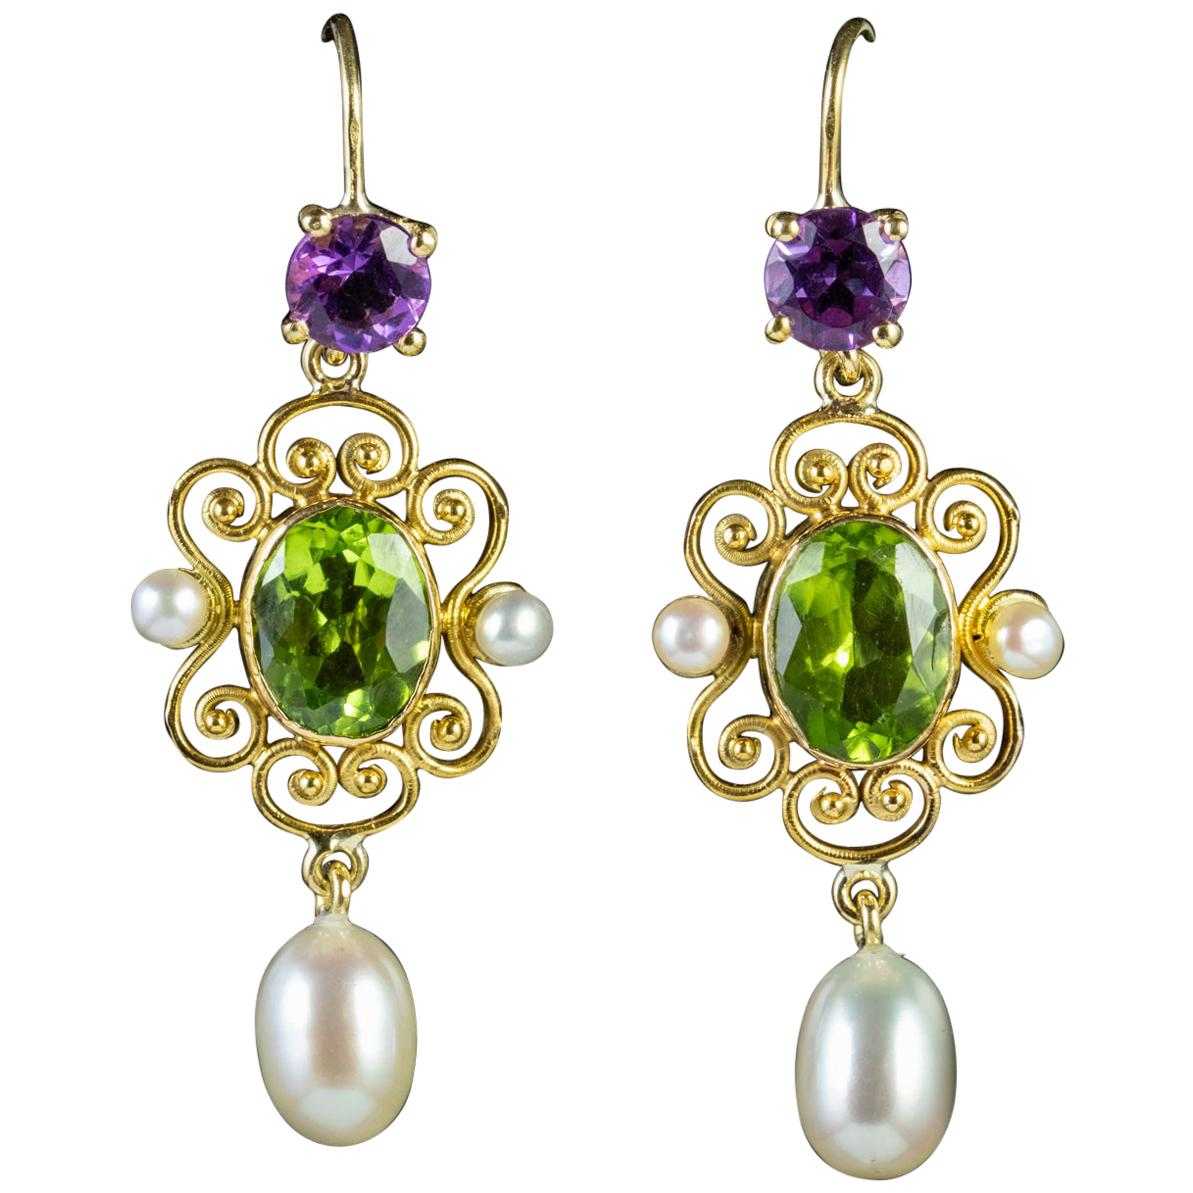 fafa1c902 Antique Peridot Earrings - 369 For Sale at 1stdibs